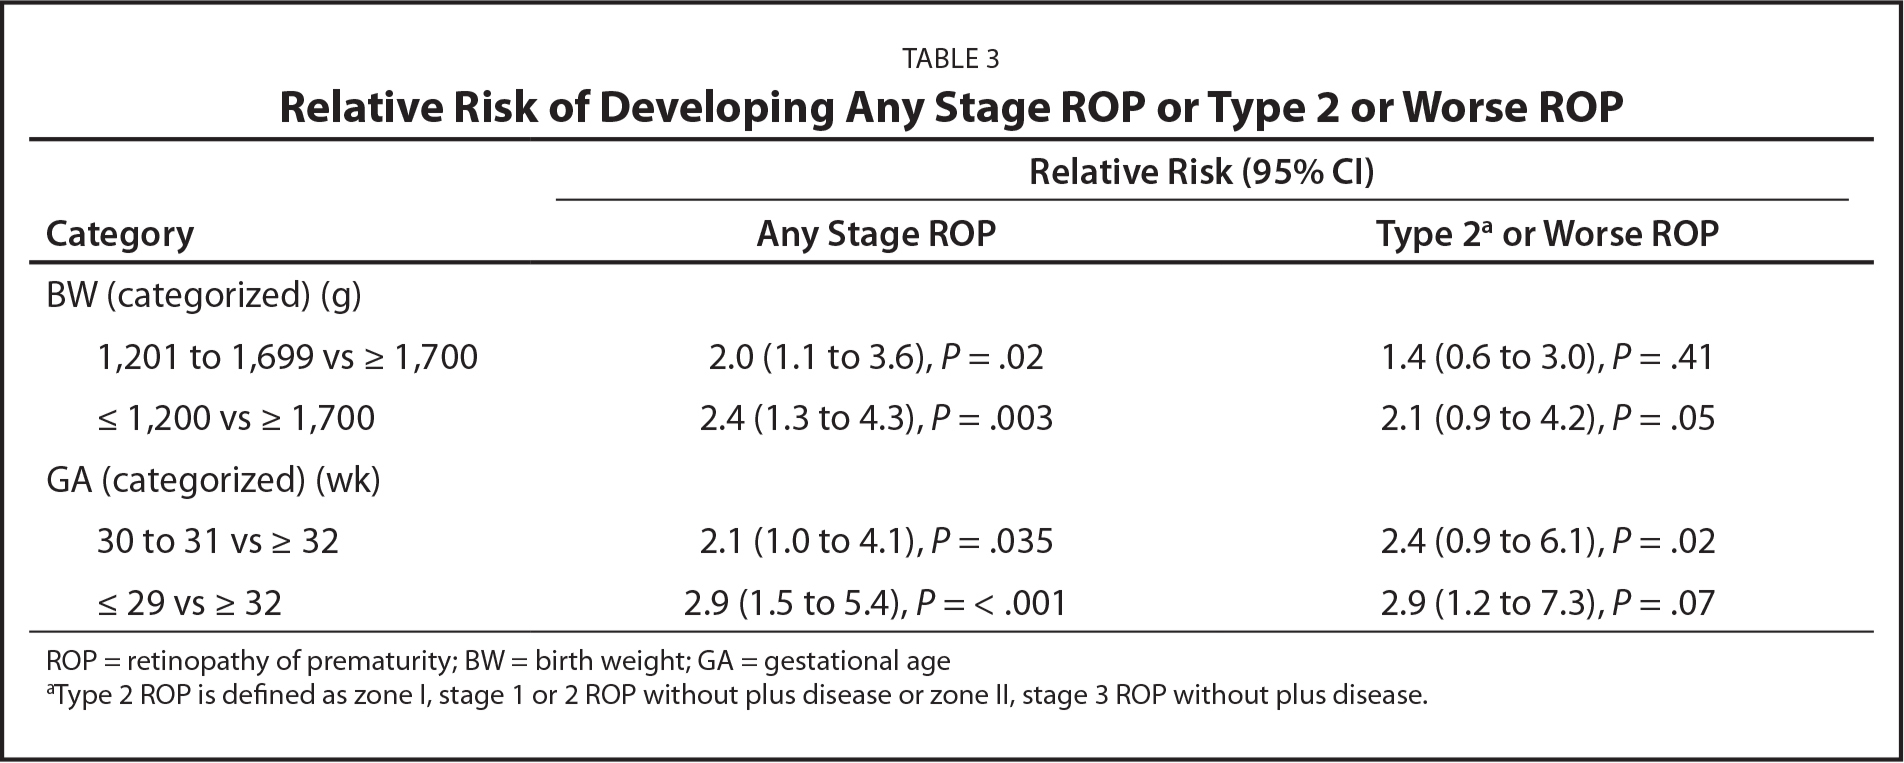 Relative Risk of Developing Any Stage ROP or Type 2 or Worse ROP